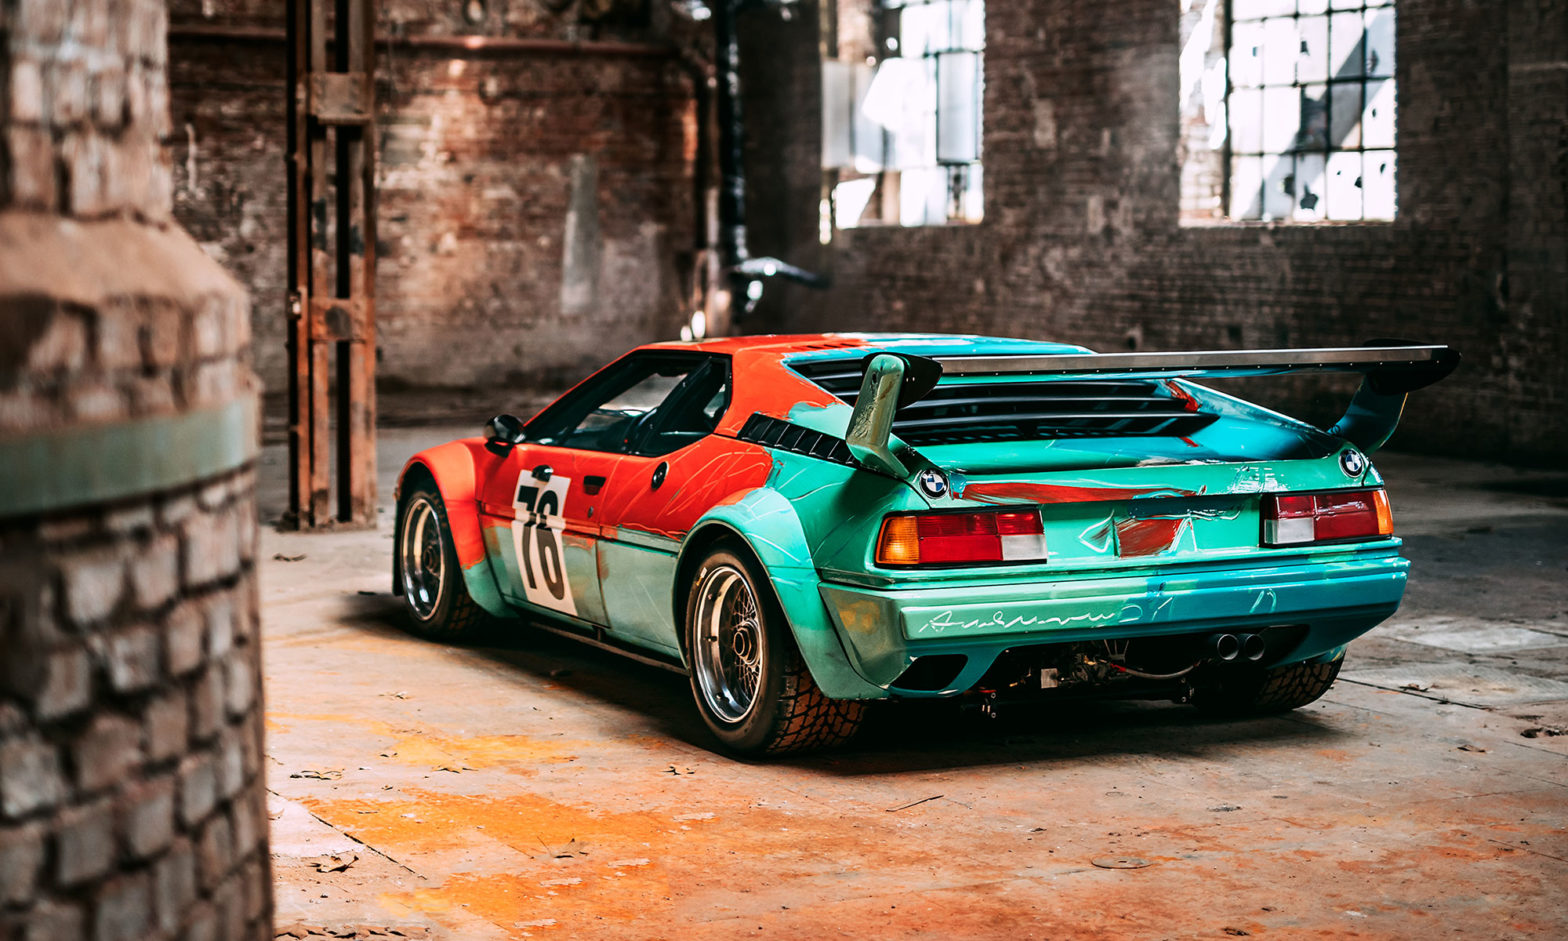 BMW Art Car Number 4 by Warhol Design